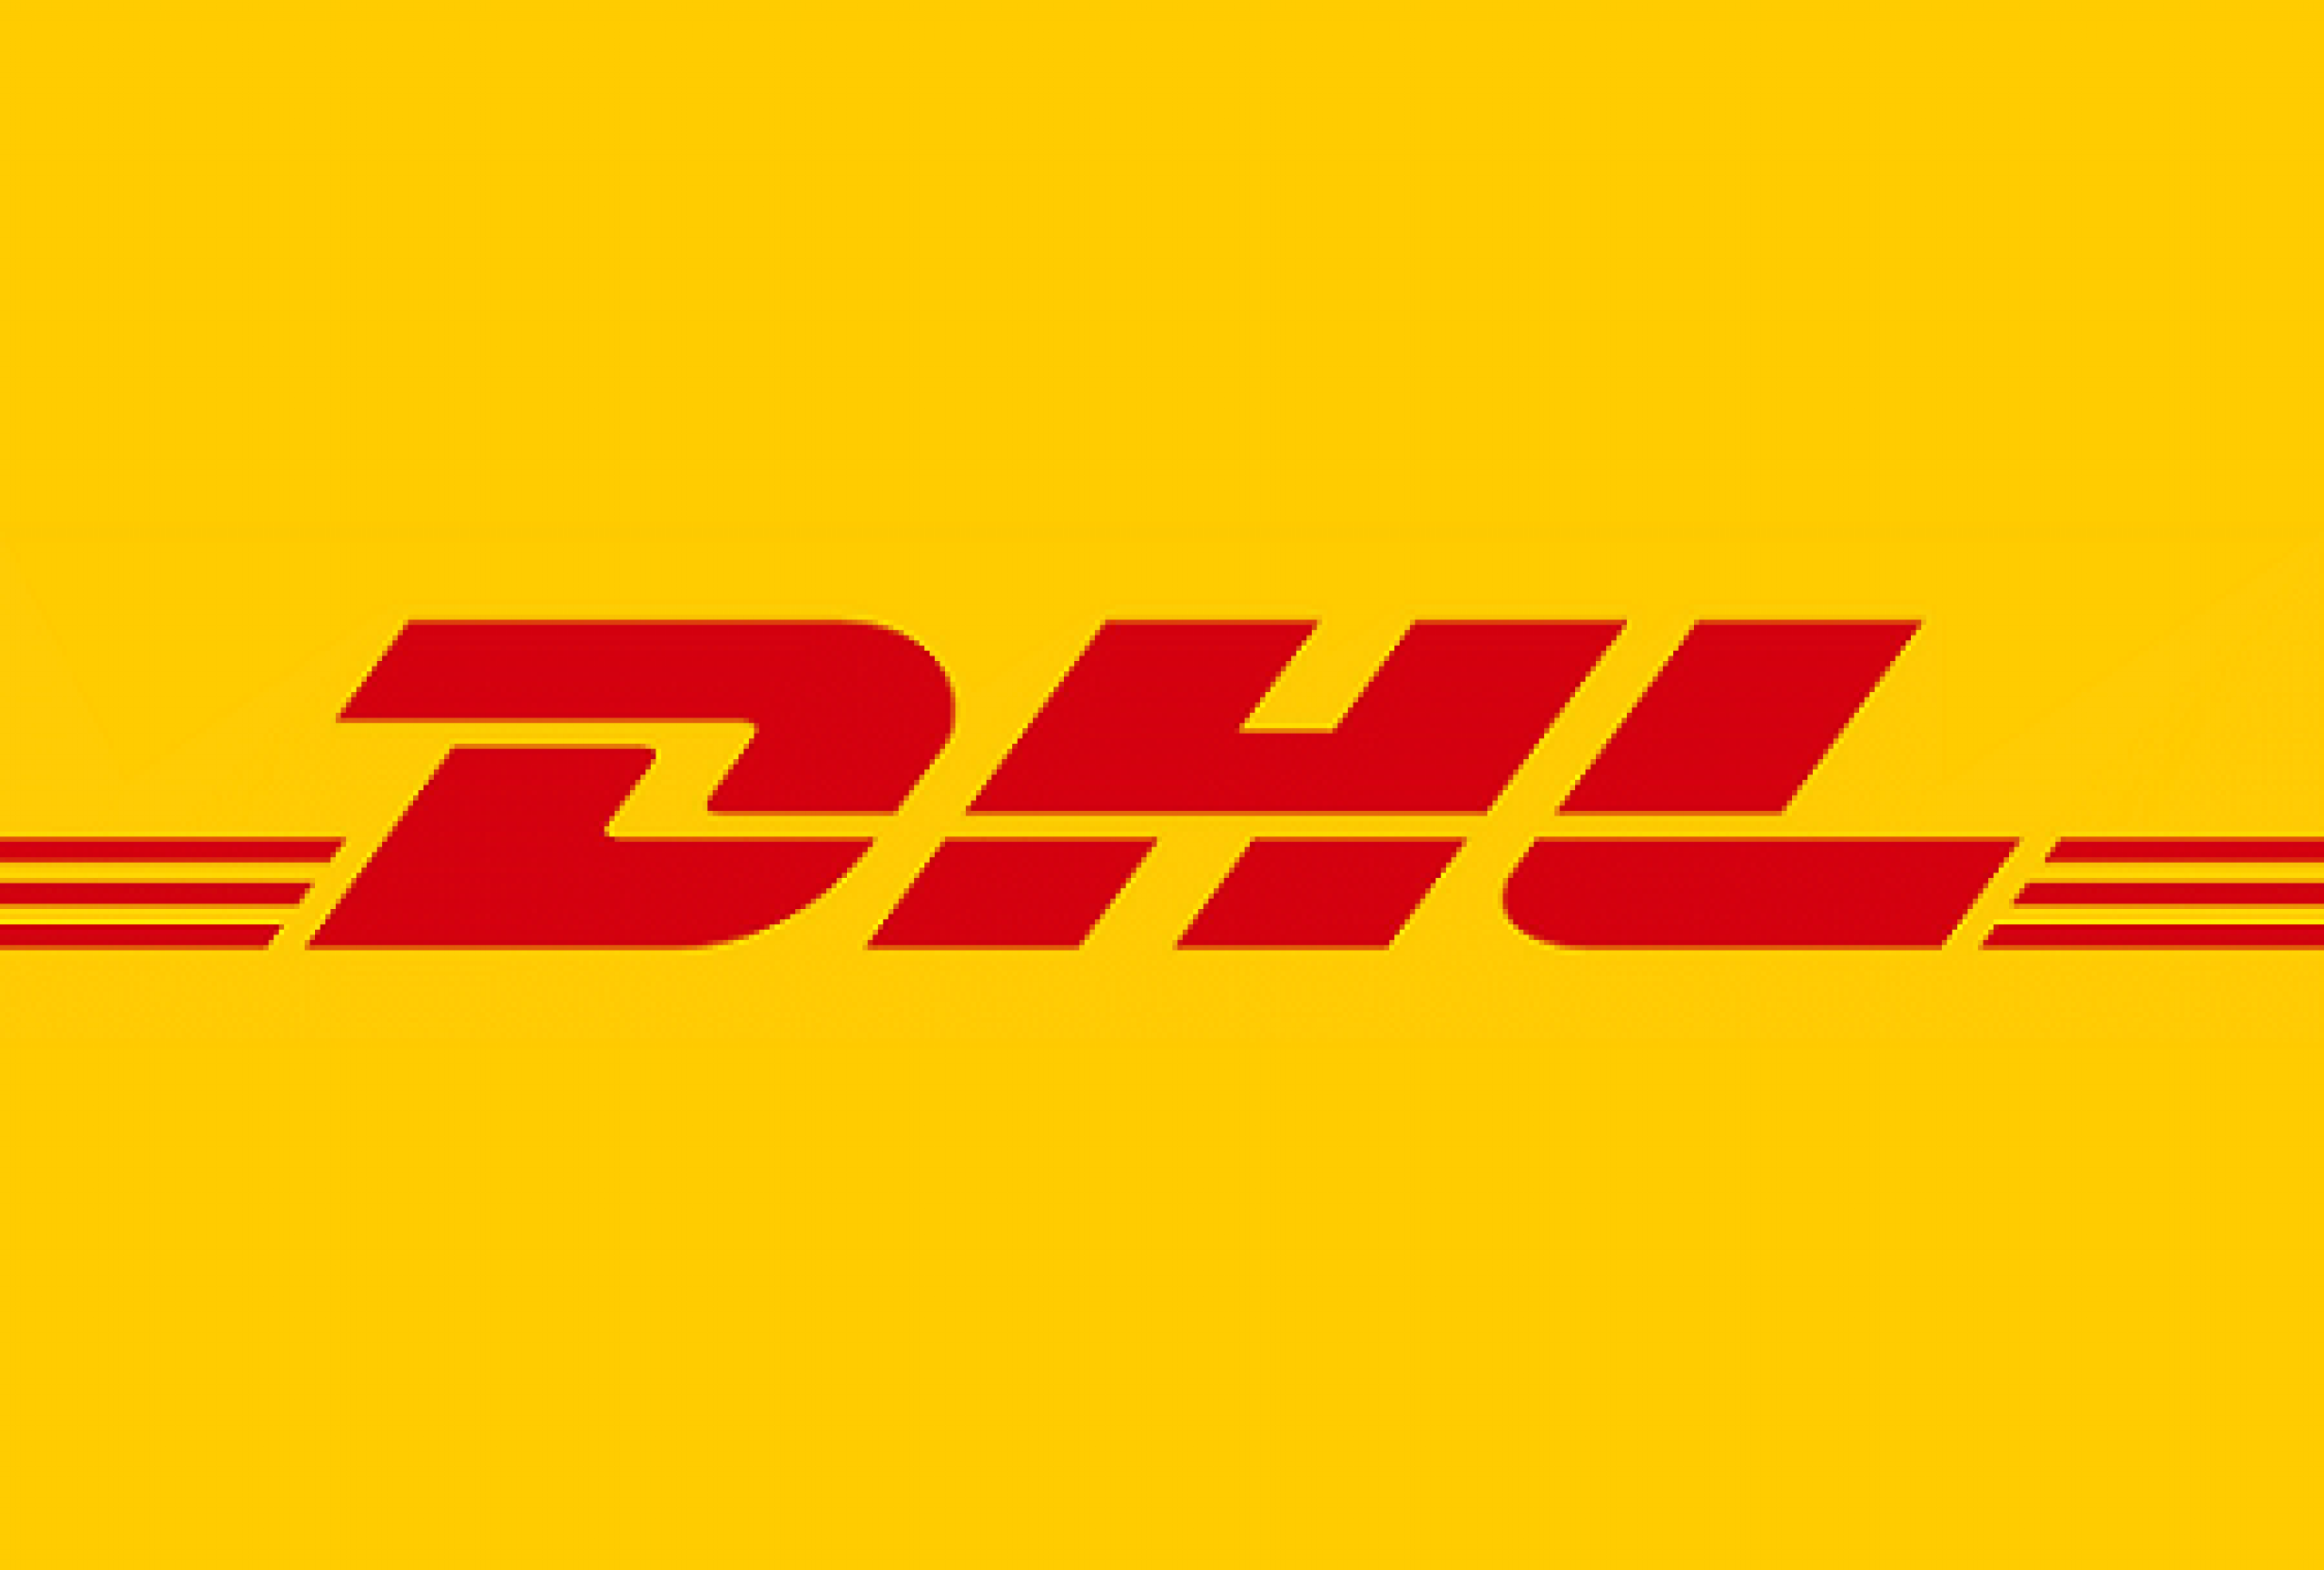 dhl logo logo brands for free hd 3d